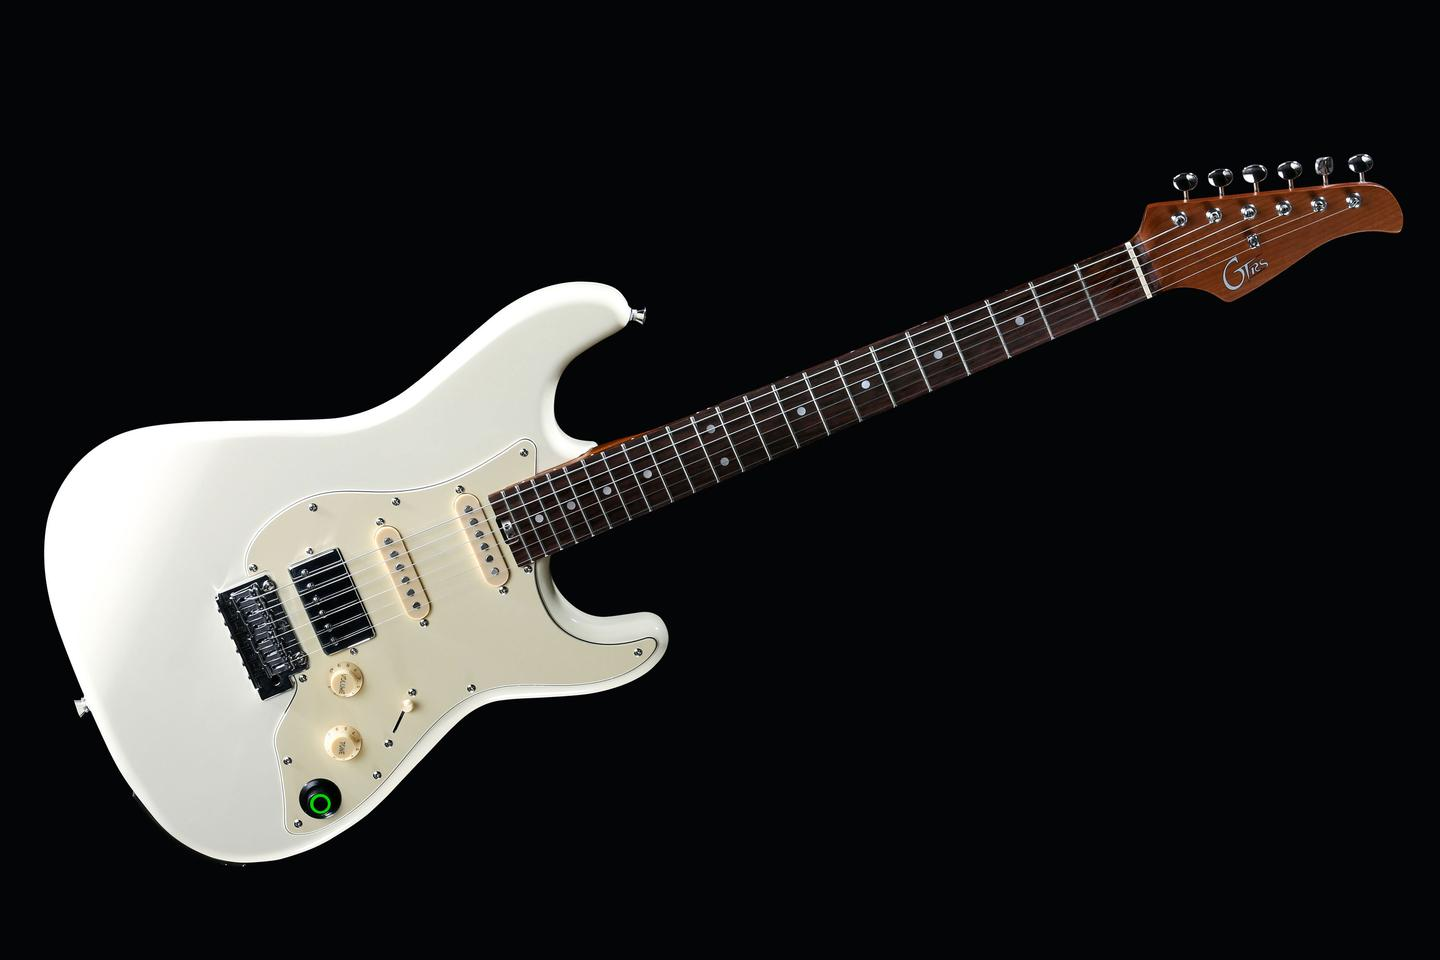 The Strat-shaped 800 Series guitar features alnico pickups and a digital circuit